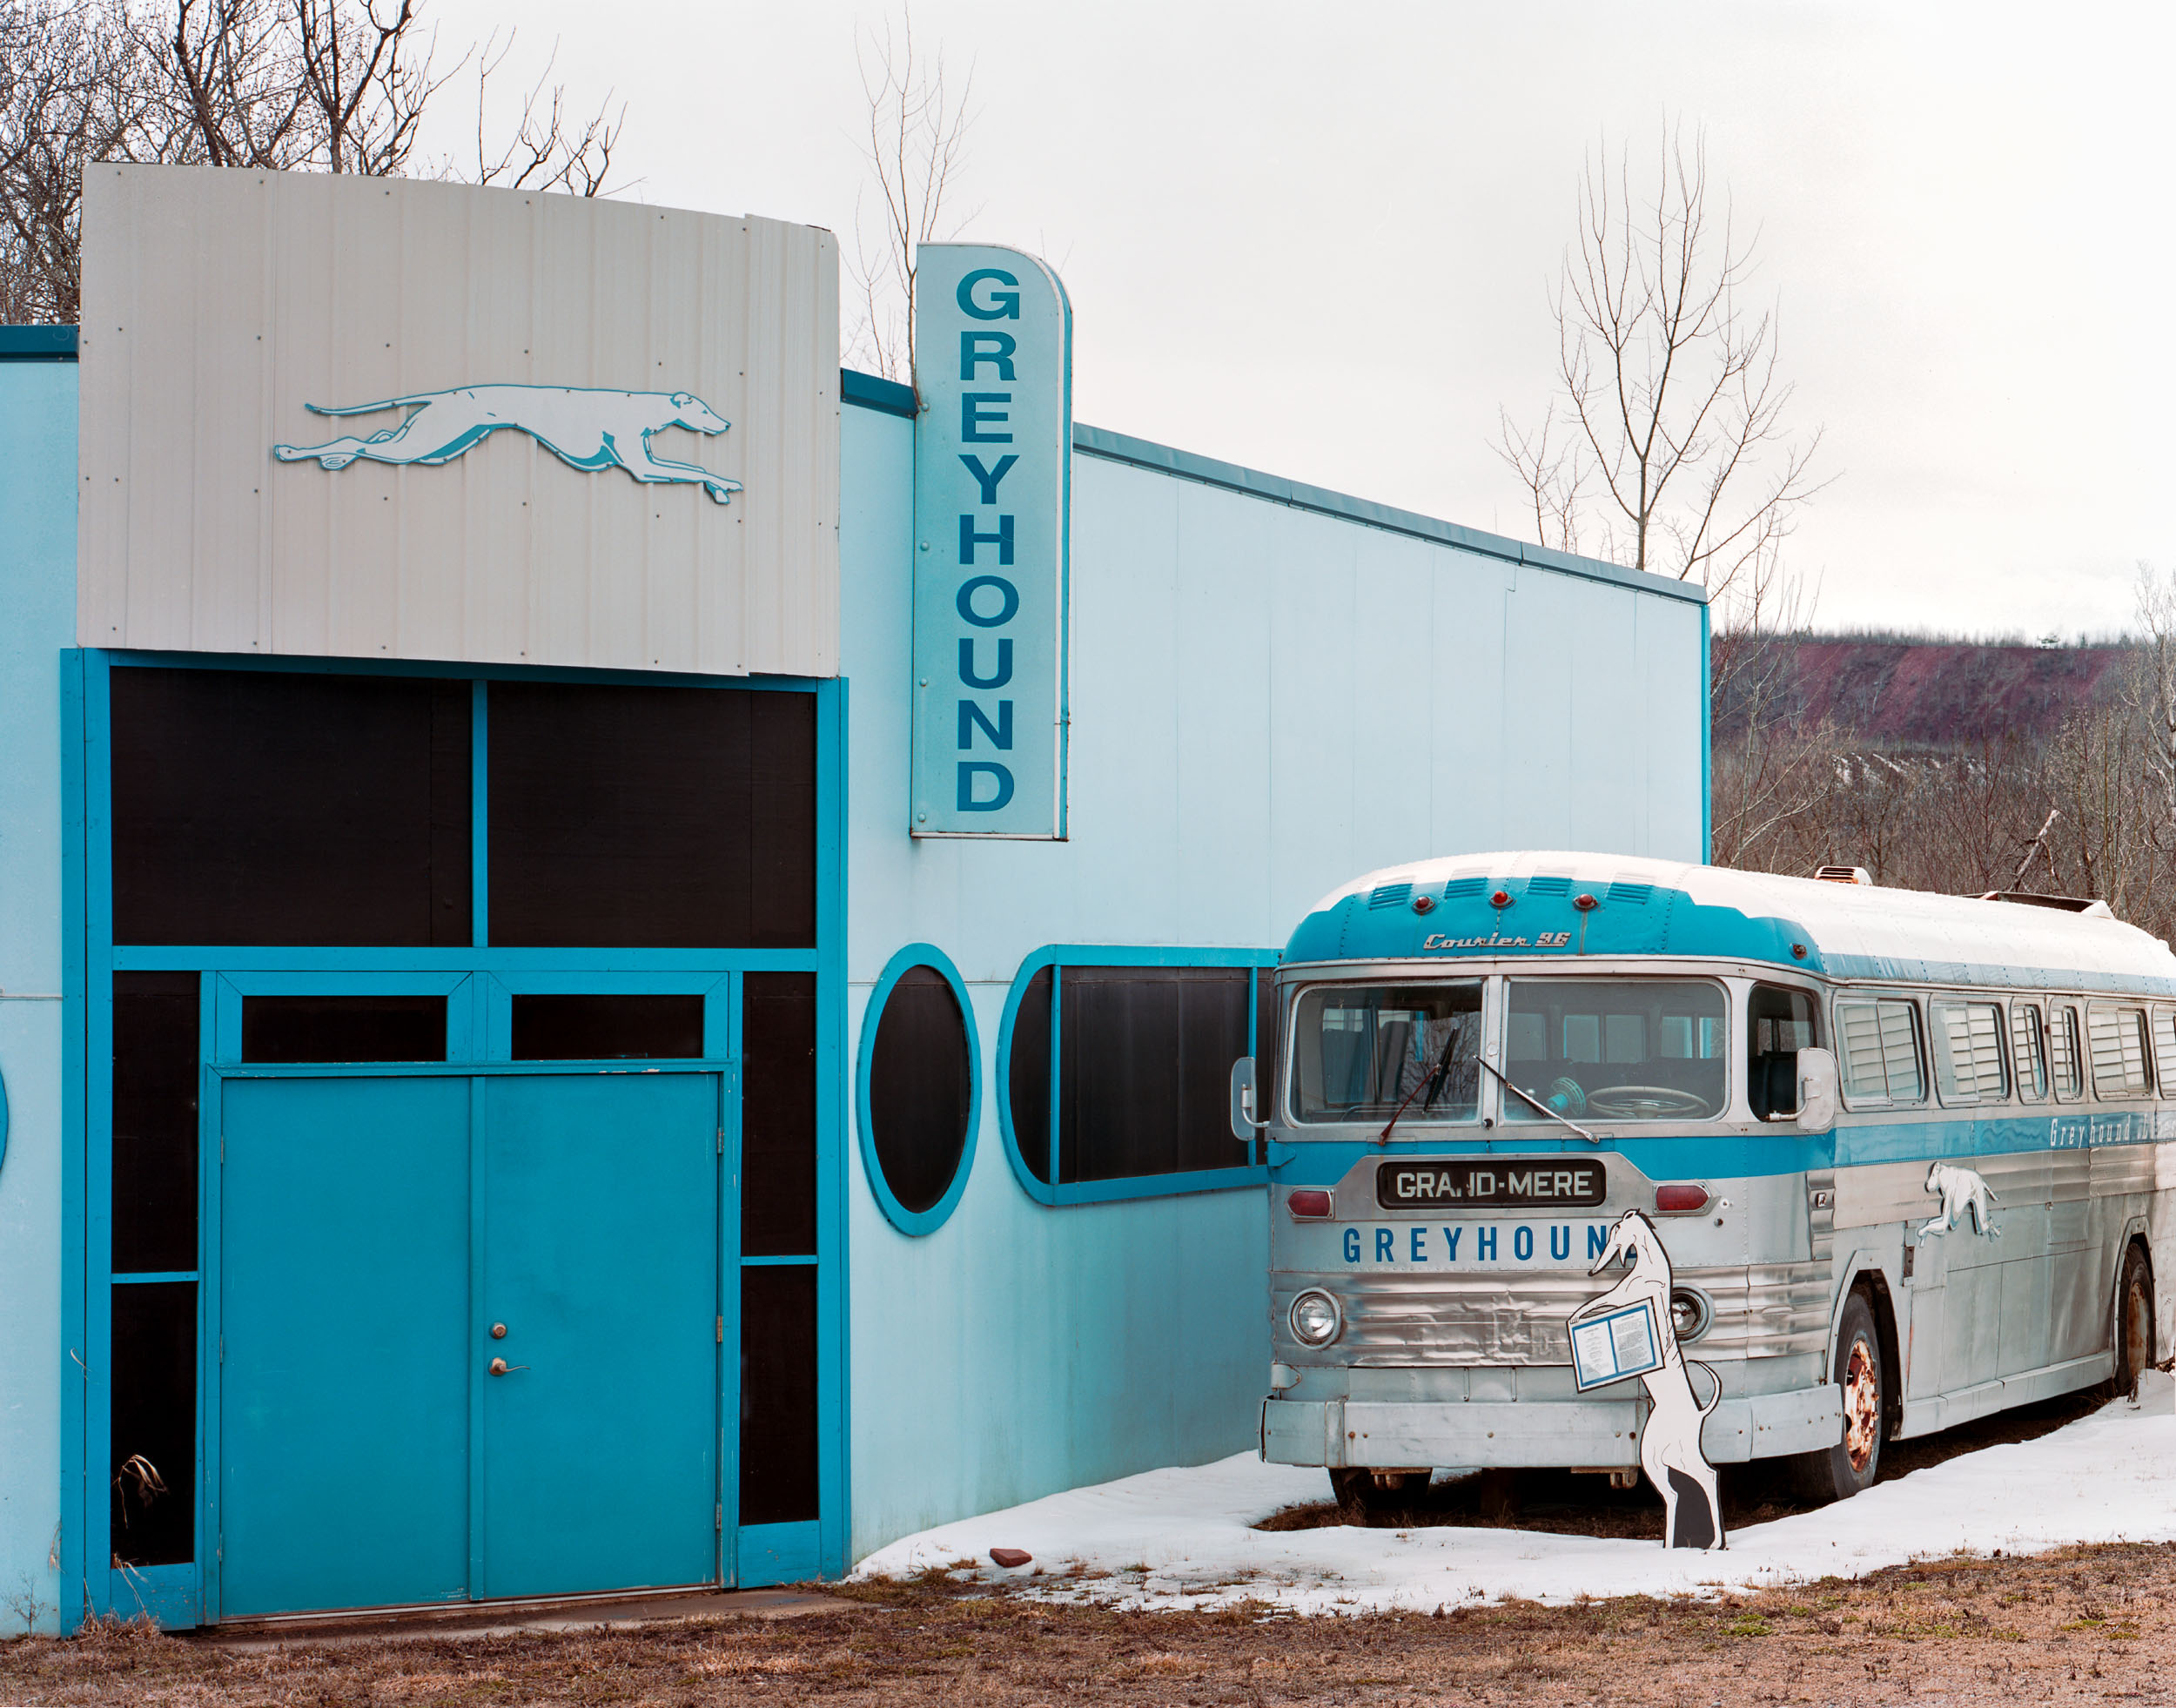 Greyhound, Hibbing, Minnesota